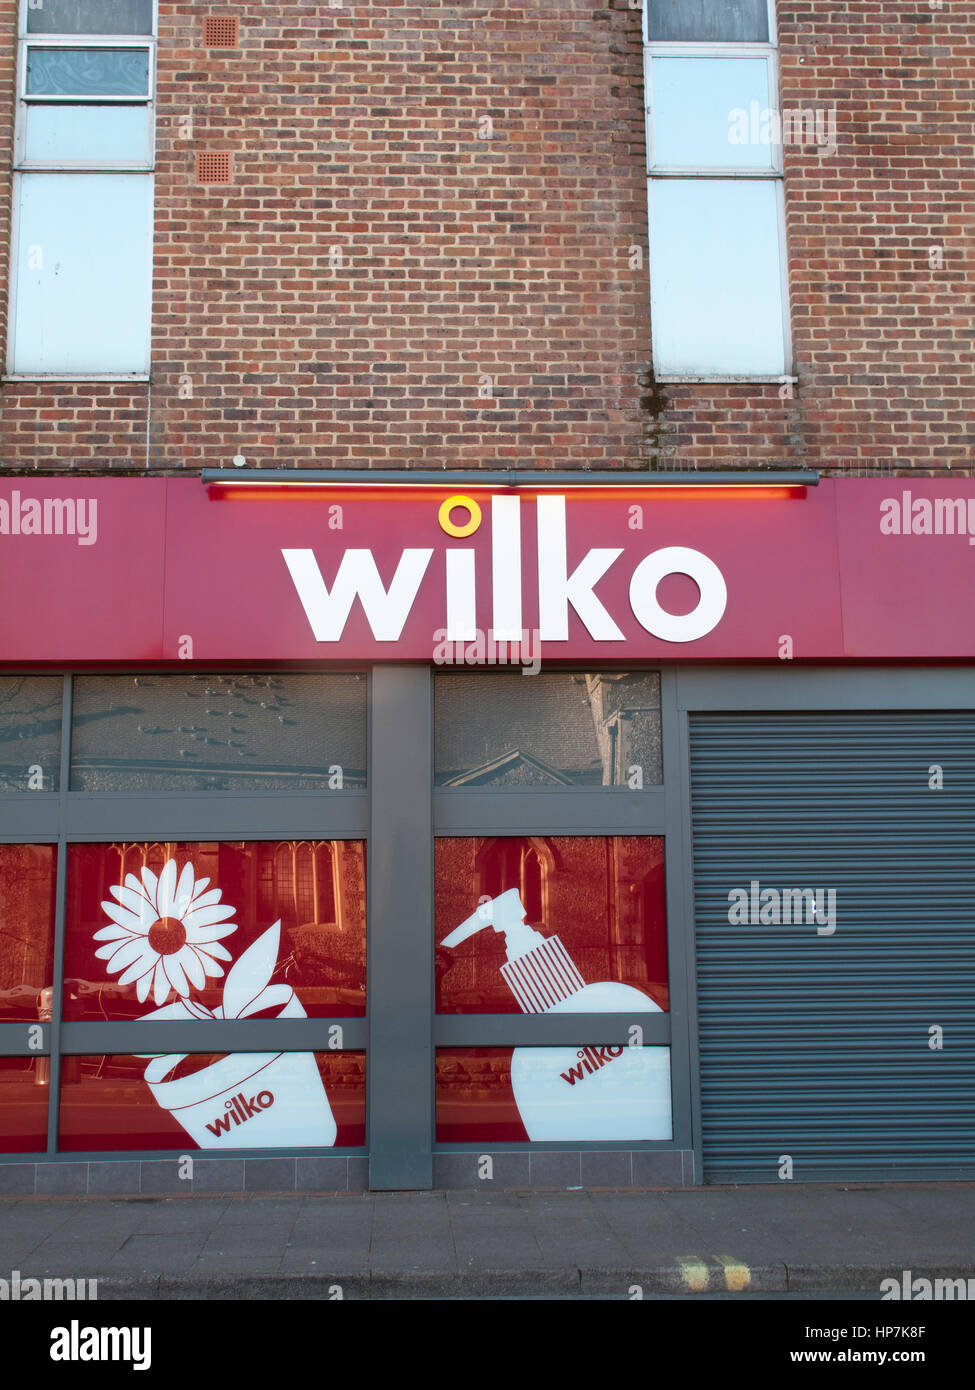 Wilko shop window, retails homeware and household goods owned by Tony and Lisa Wilkinson - Stock Image